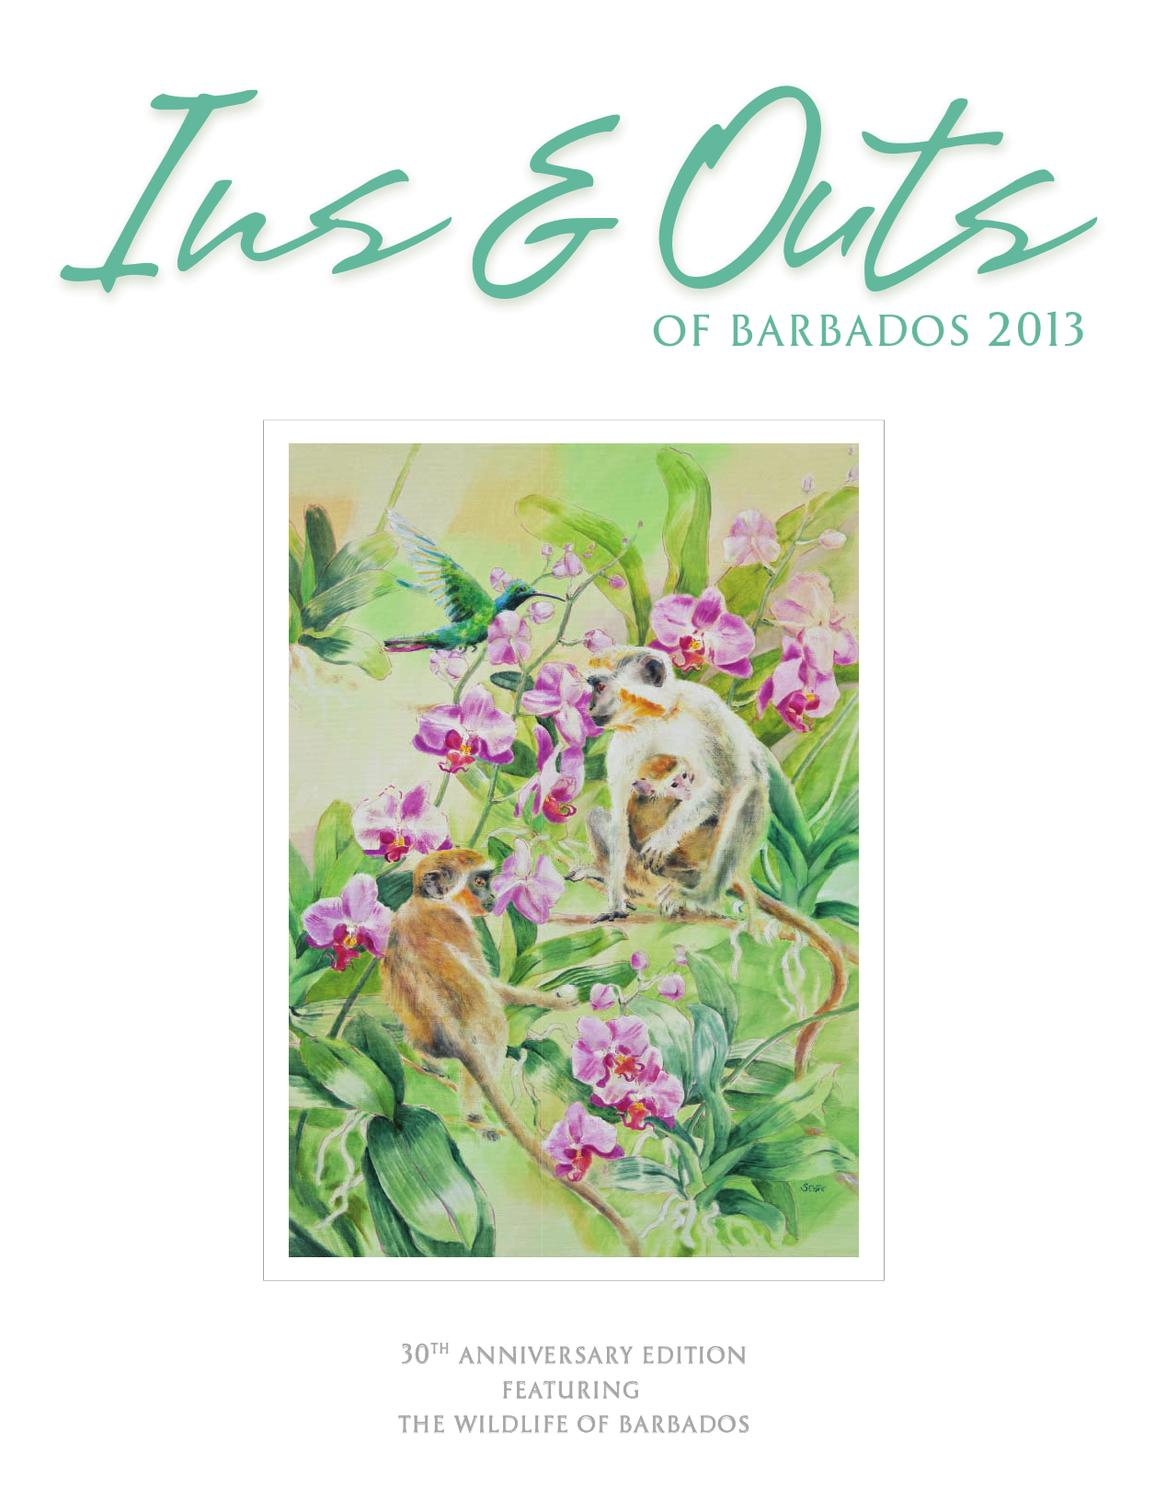 Canape Cuir Weston Ins And Outs Of Barbados 2013 By Miller Publishing Co Ltd